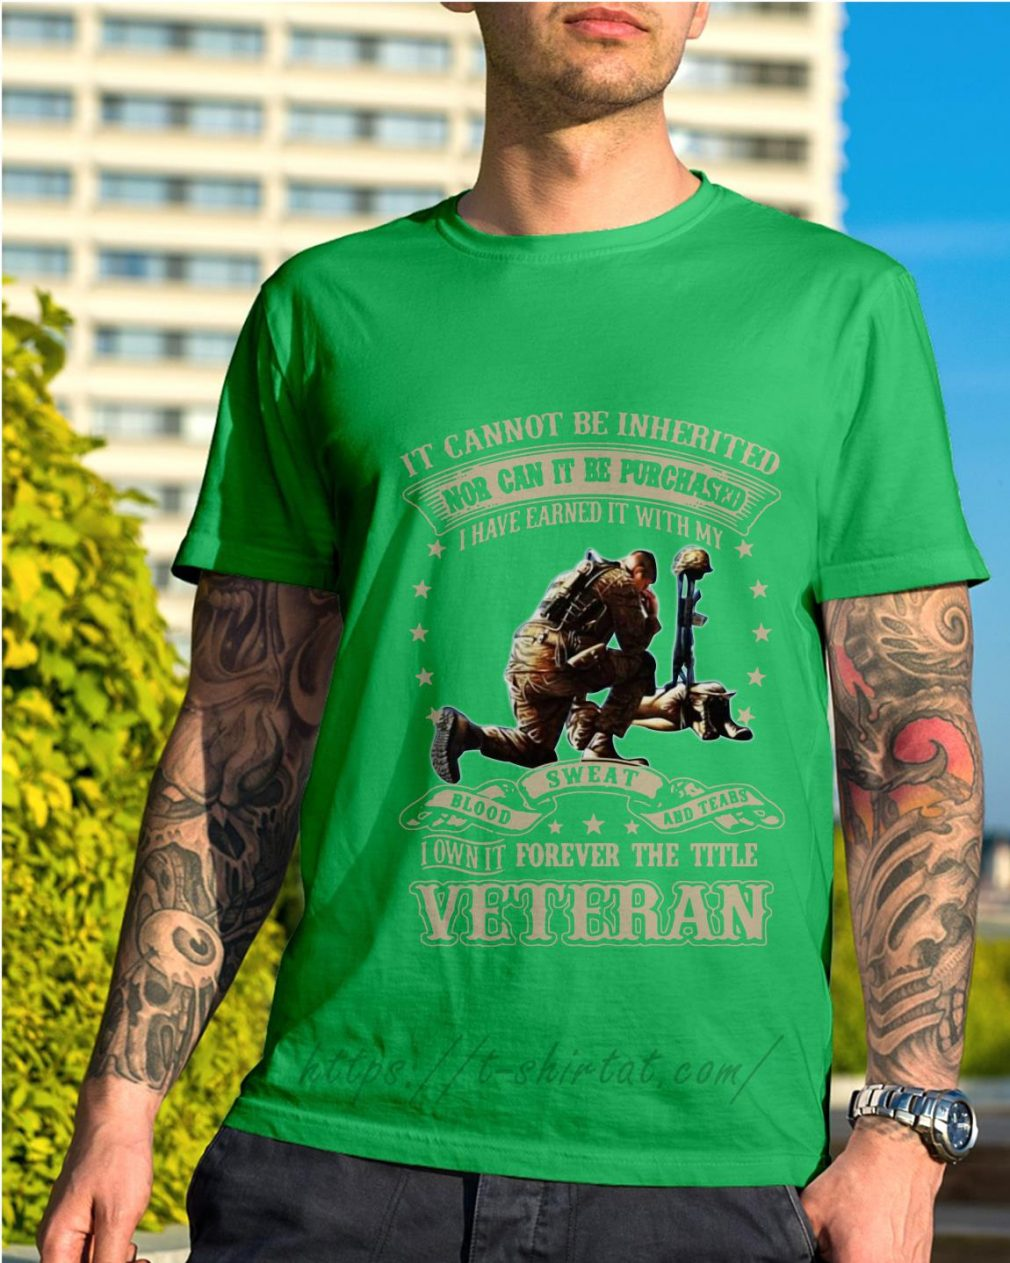 It cannot be inherited nor can it be purchased I have earned it shirt